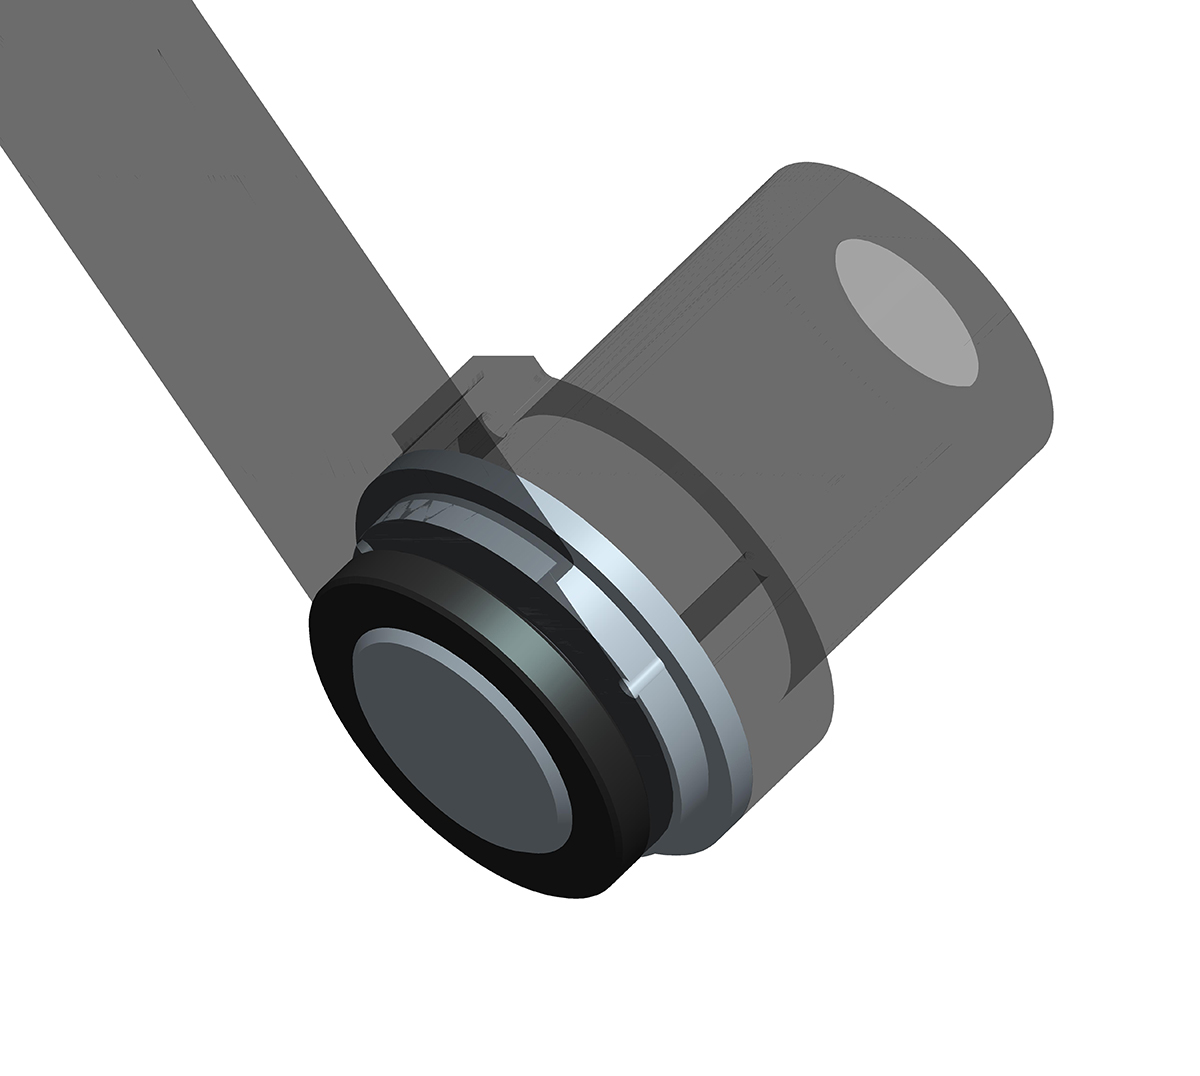 Polarscope adapter